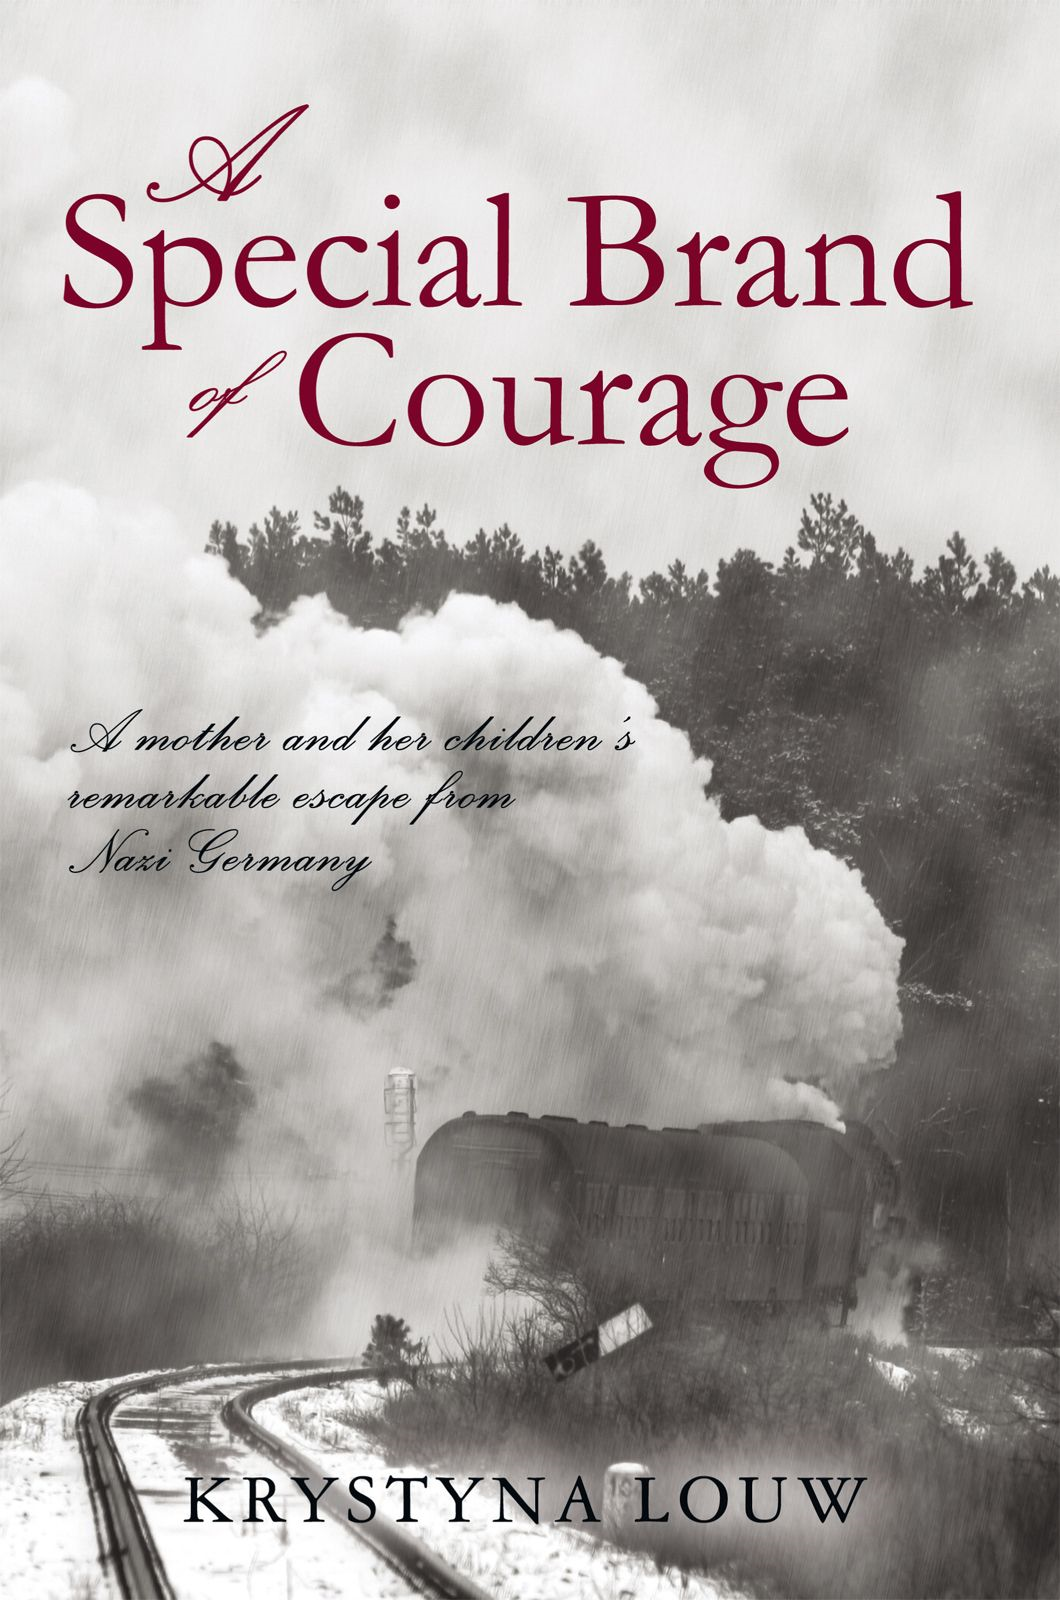 A Special Brand Of Courage By: Krystyna Louw